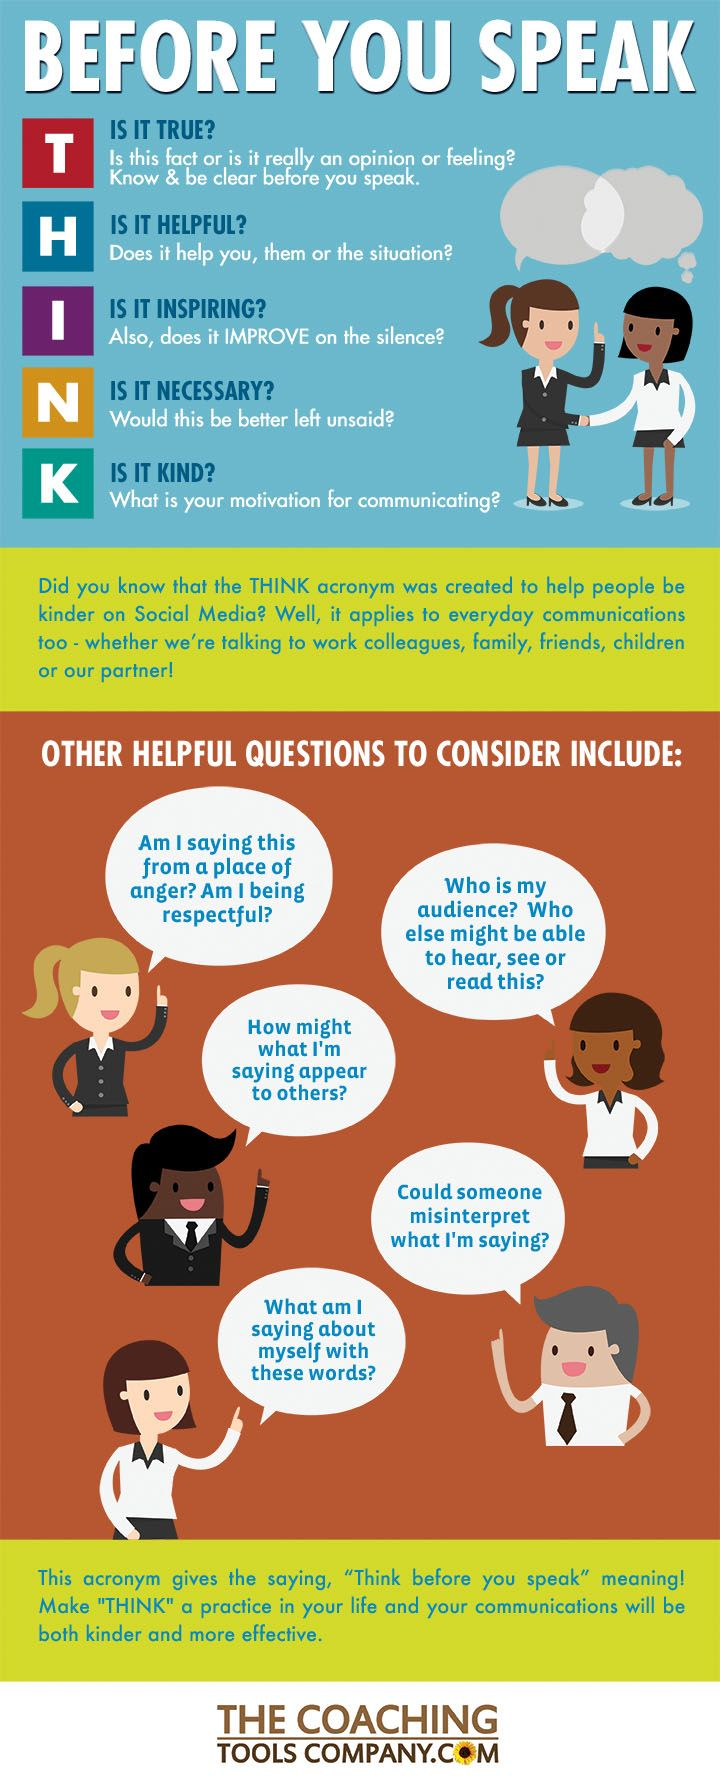 THINK Acronym for Kinder and More Effective Communications (Infographic) is part of Think acronym, Effective communication, Business etiquette, Interpersonal communication, Online bullying, Business communication - This THINK acronym and infographic helps us communicate more kindly with others  Originally the THINK acronym was created to help reduce online bullying